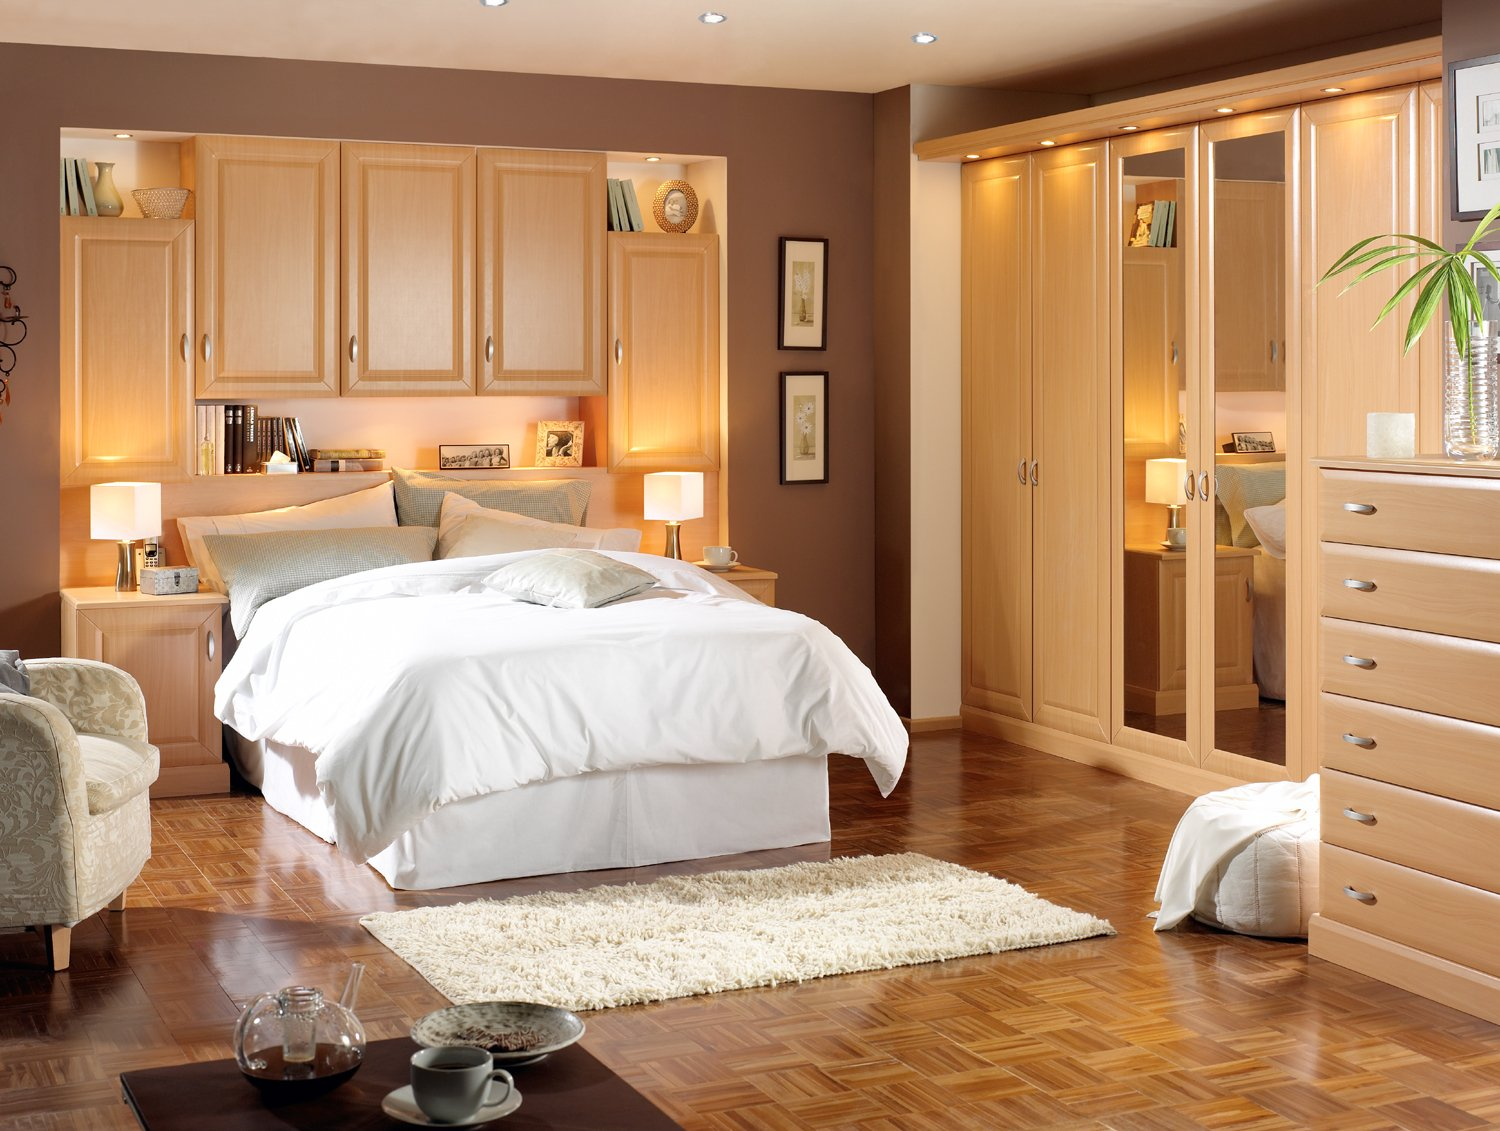 Bedrooms cupboard designs pictures an interior design for Nice decorations for bedrooms